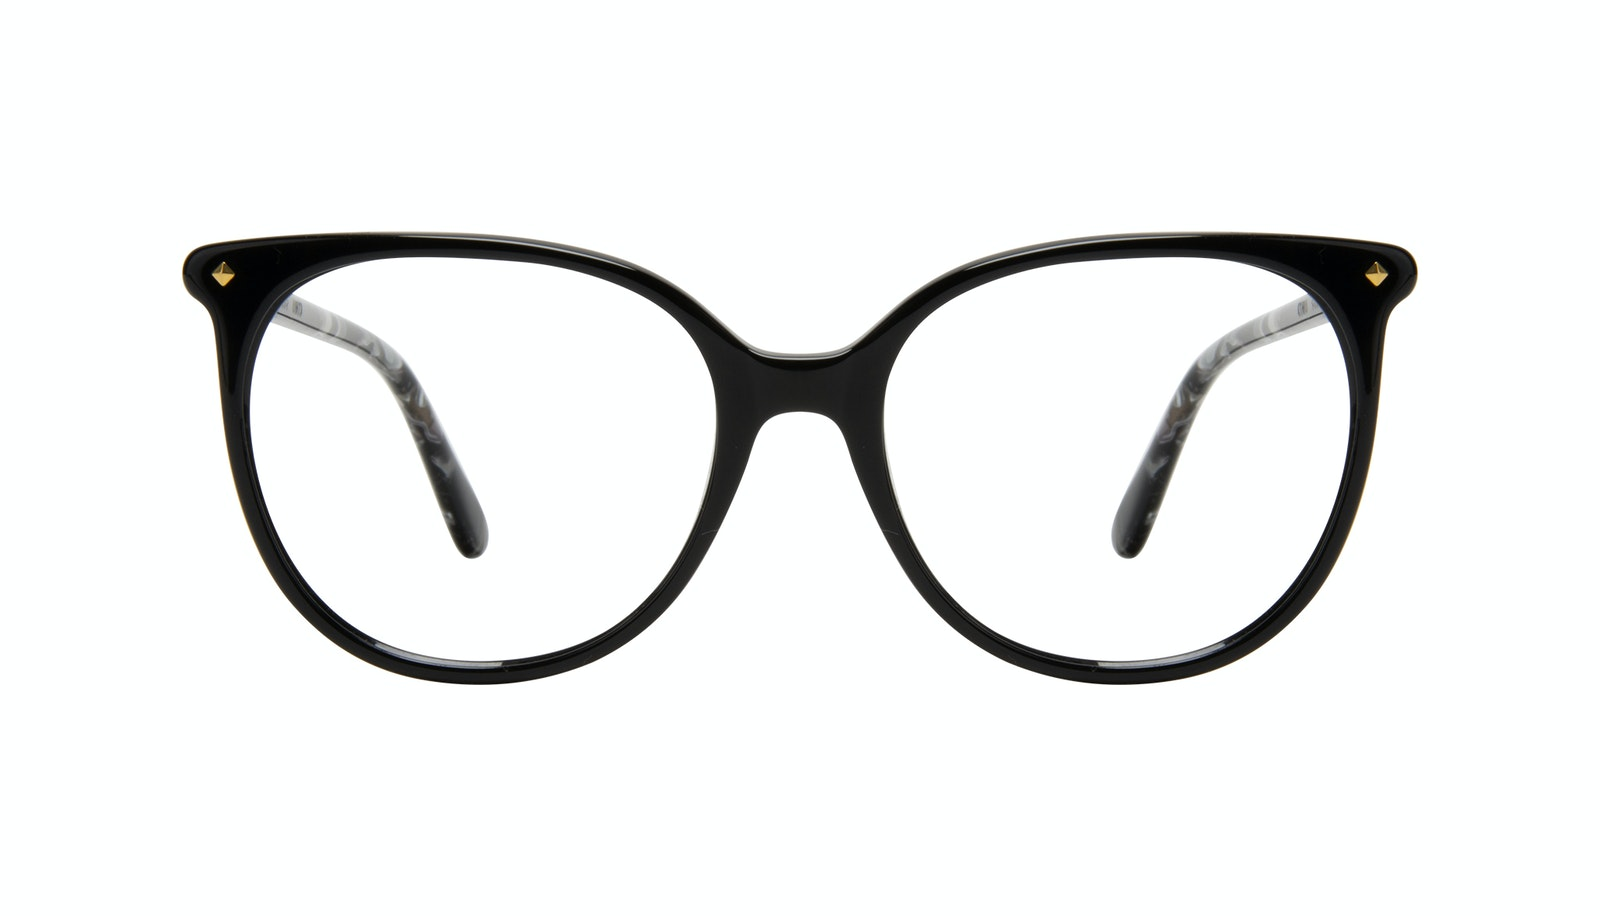 Affordable Fashion Glasses Round Eyeglasses Women Area Petite Onyx